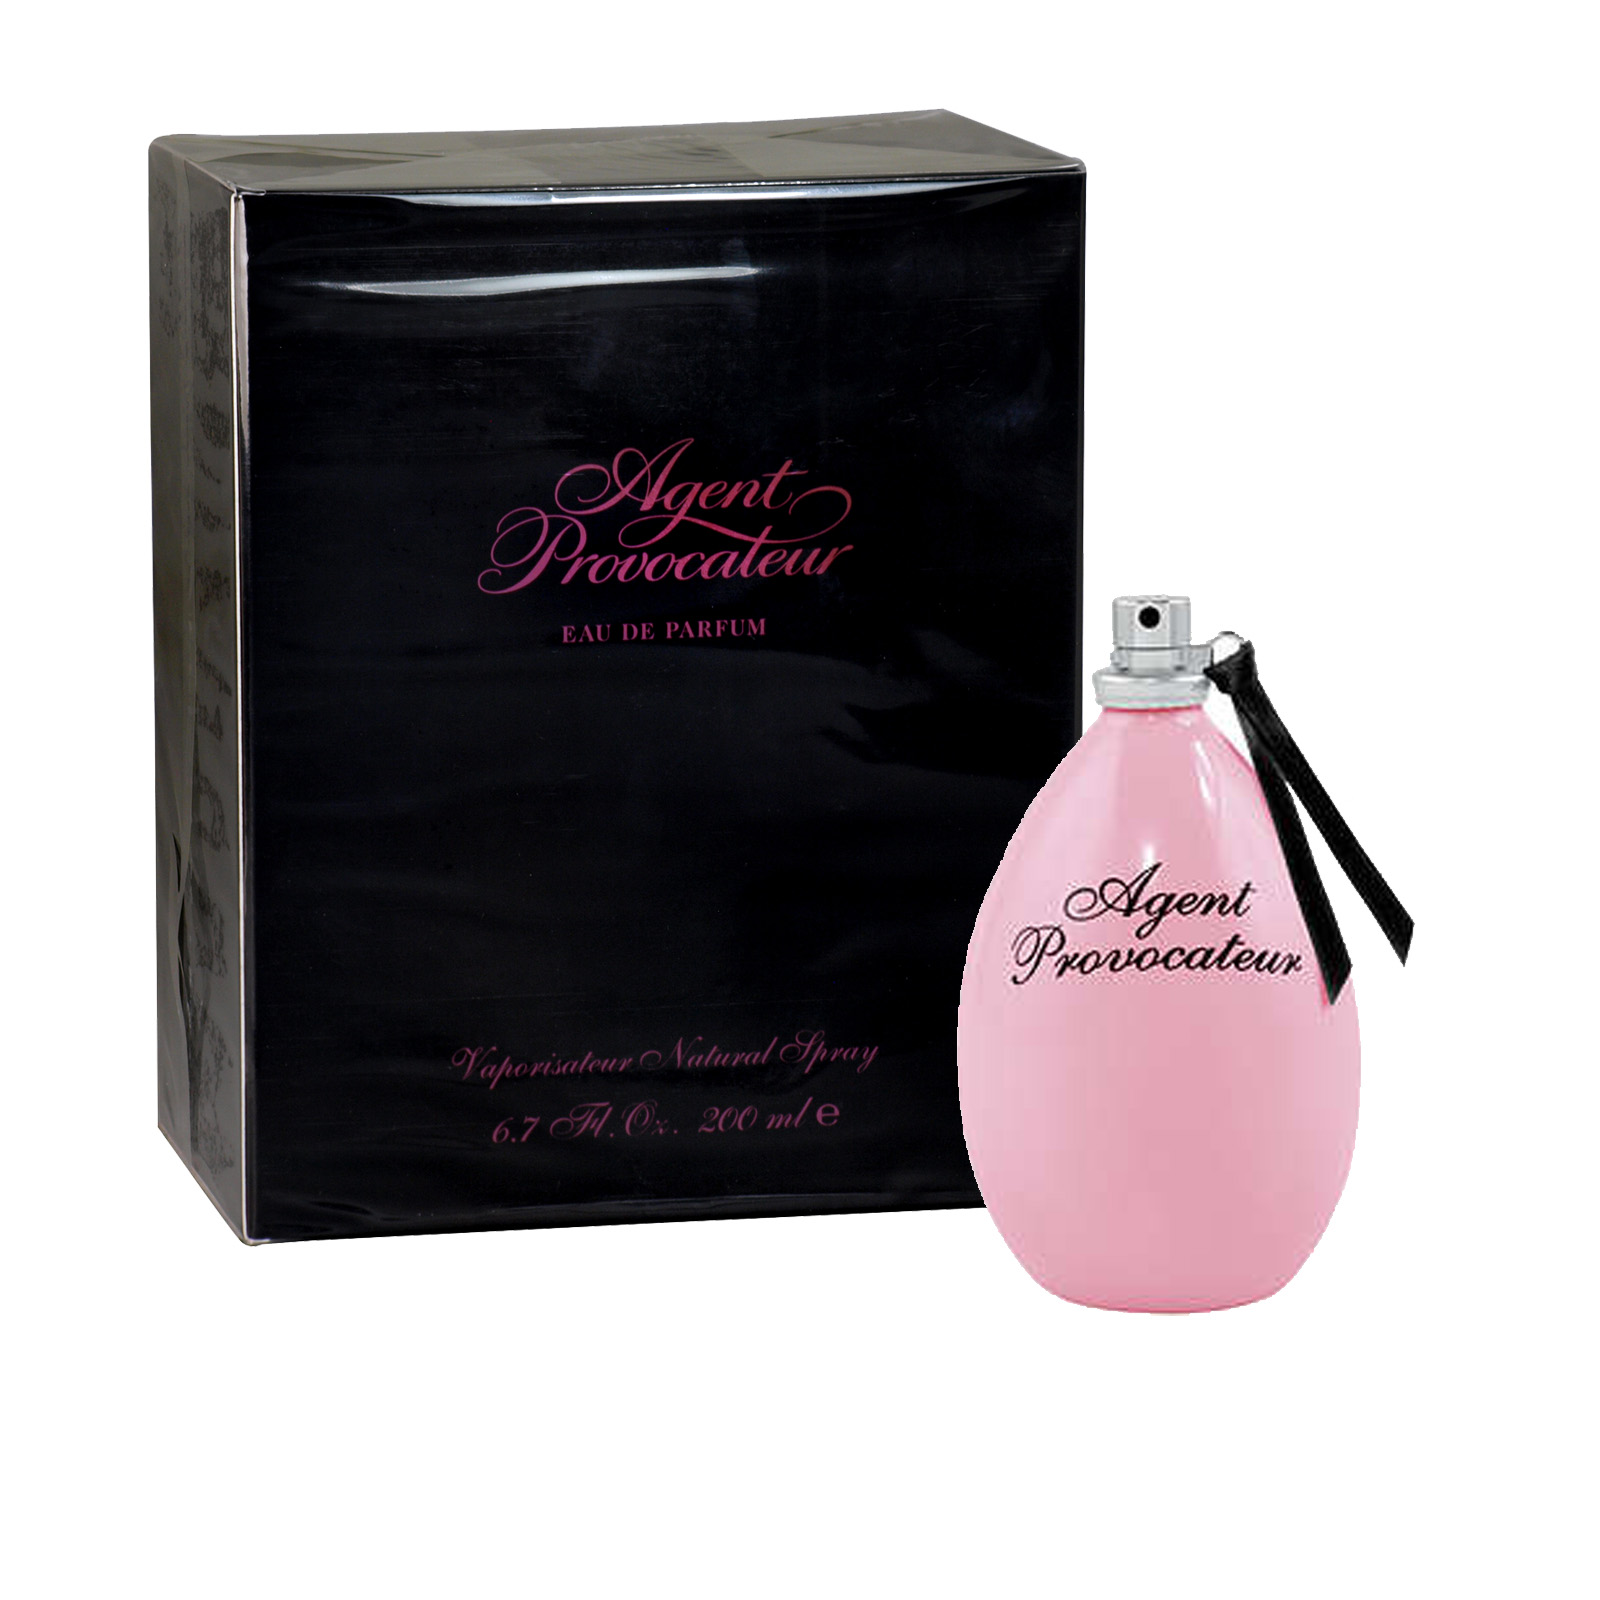 AGENT PROVOCATEUR 200ML EDP SPRAY